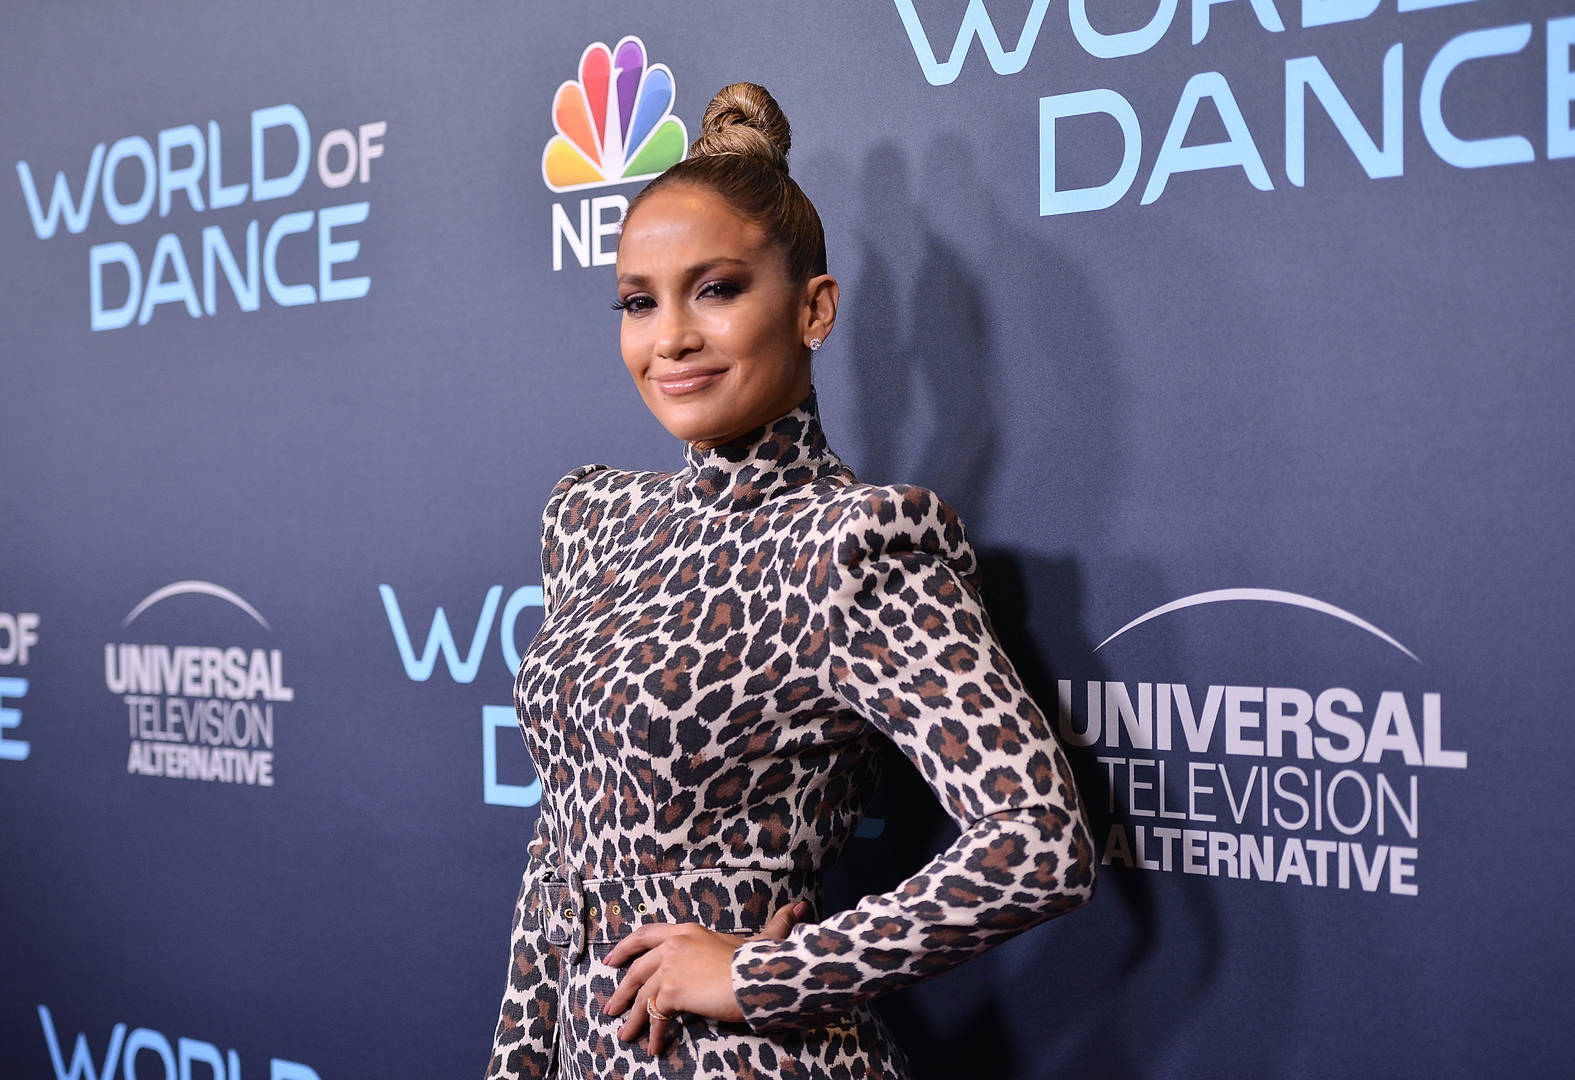 """Jennifer Lopez Sued For $6.5 Million For Allegedly Stealing Idea For """"World Of Dance"""""""